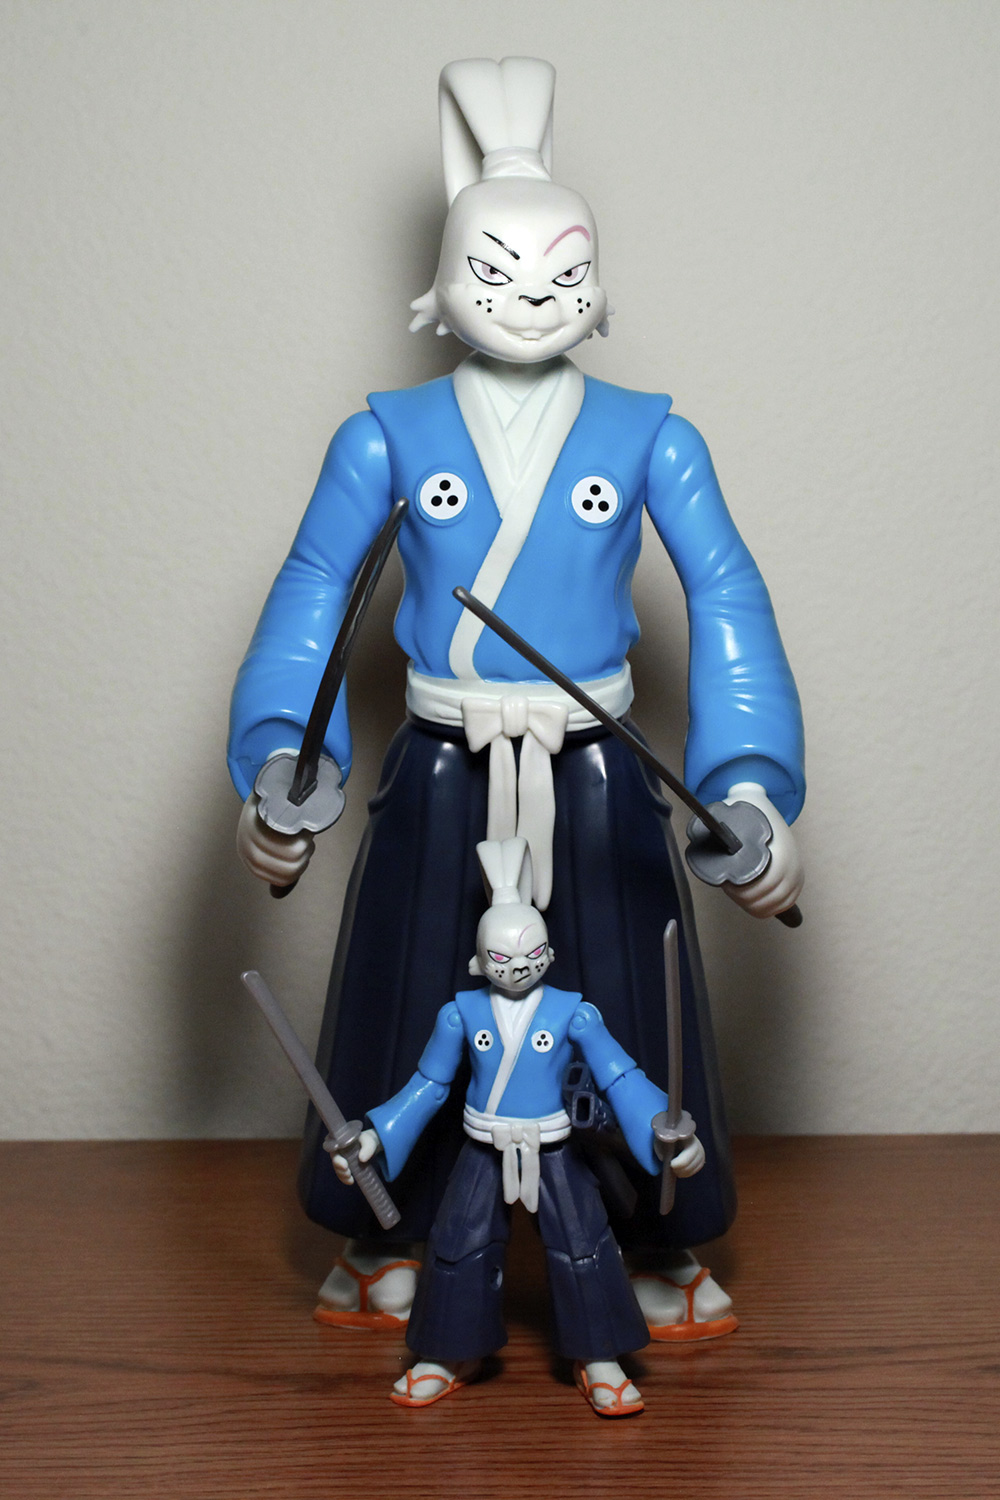 Review Playmates Toys Tmnt 11 Xl Samurai Usagi Yojimbo Figures Com